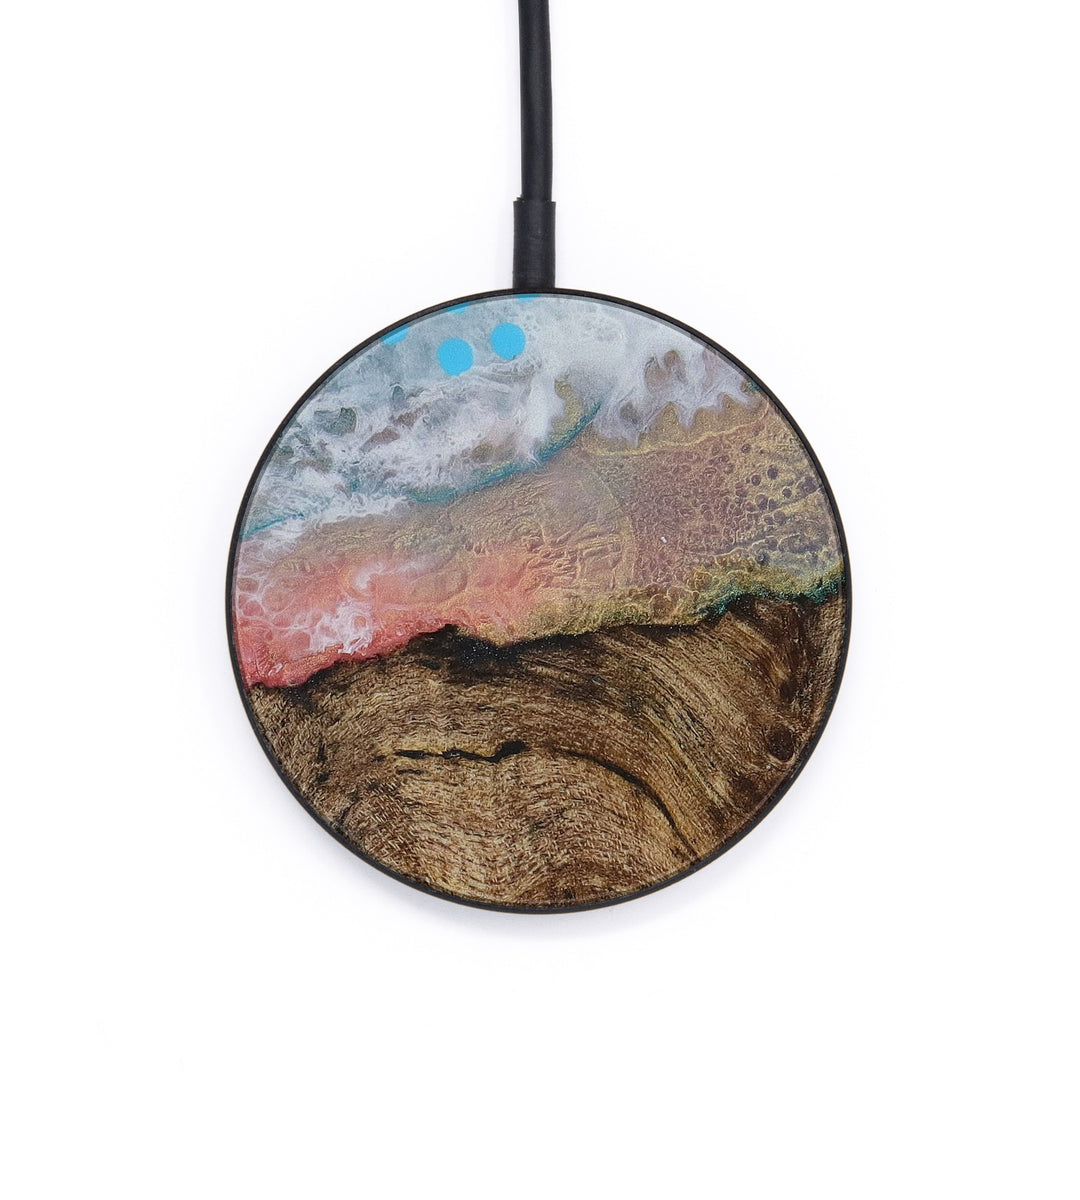 Circle Wood+Resin Wireless Charger - Sky (Graffiti, 428836)